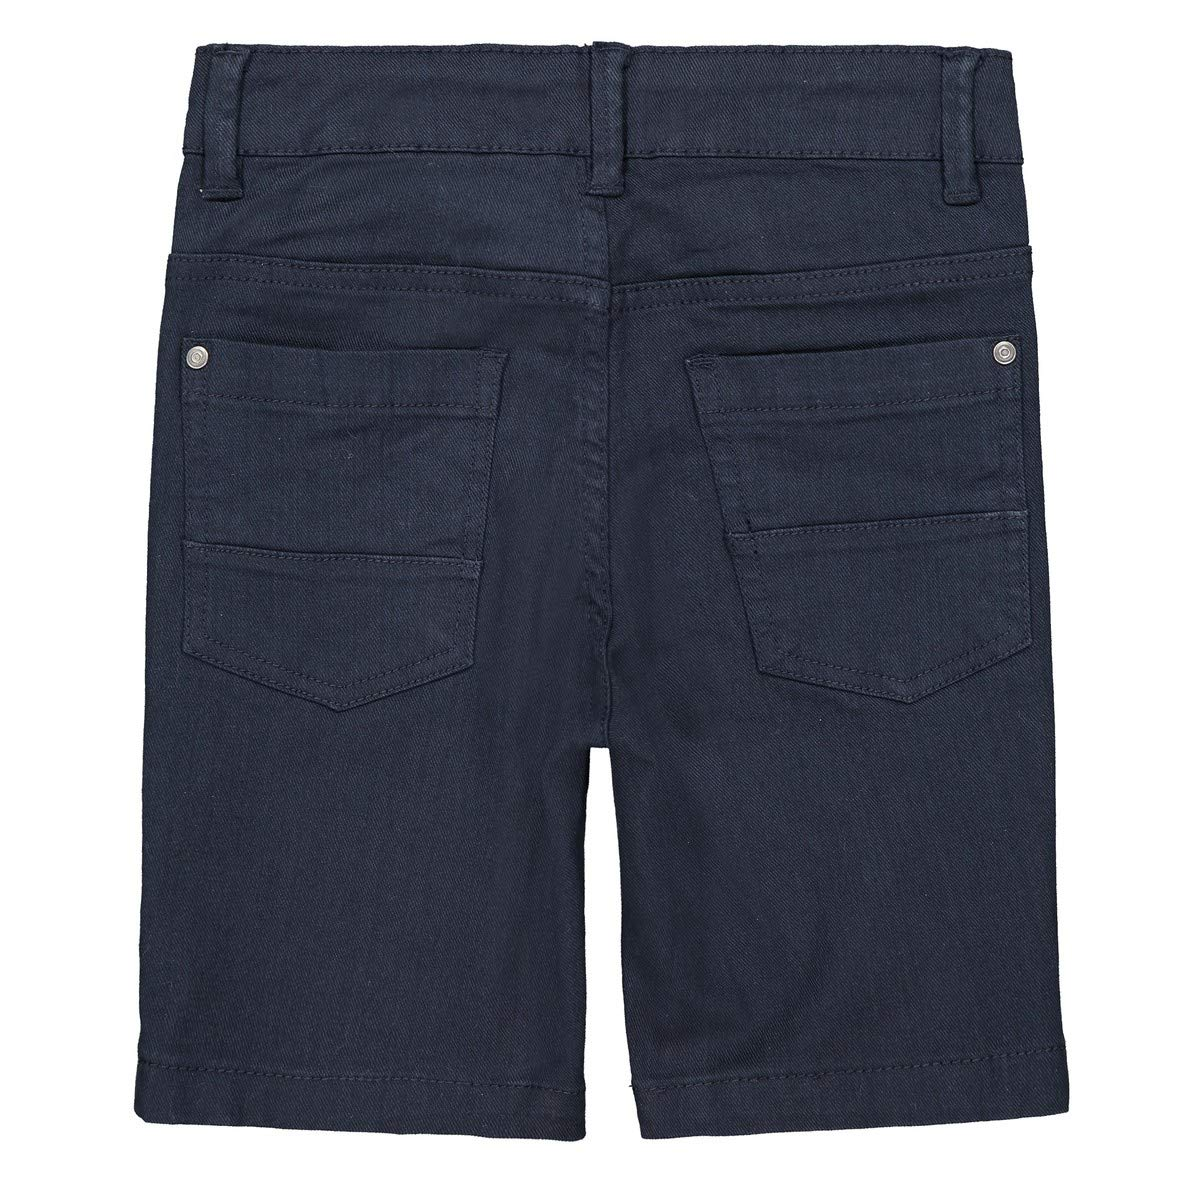 2-12 Years La Redoute Collections Big Boys Bermuda Shorts